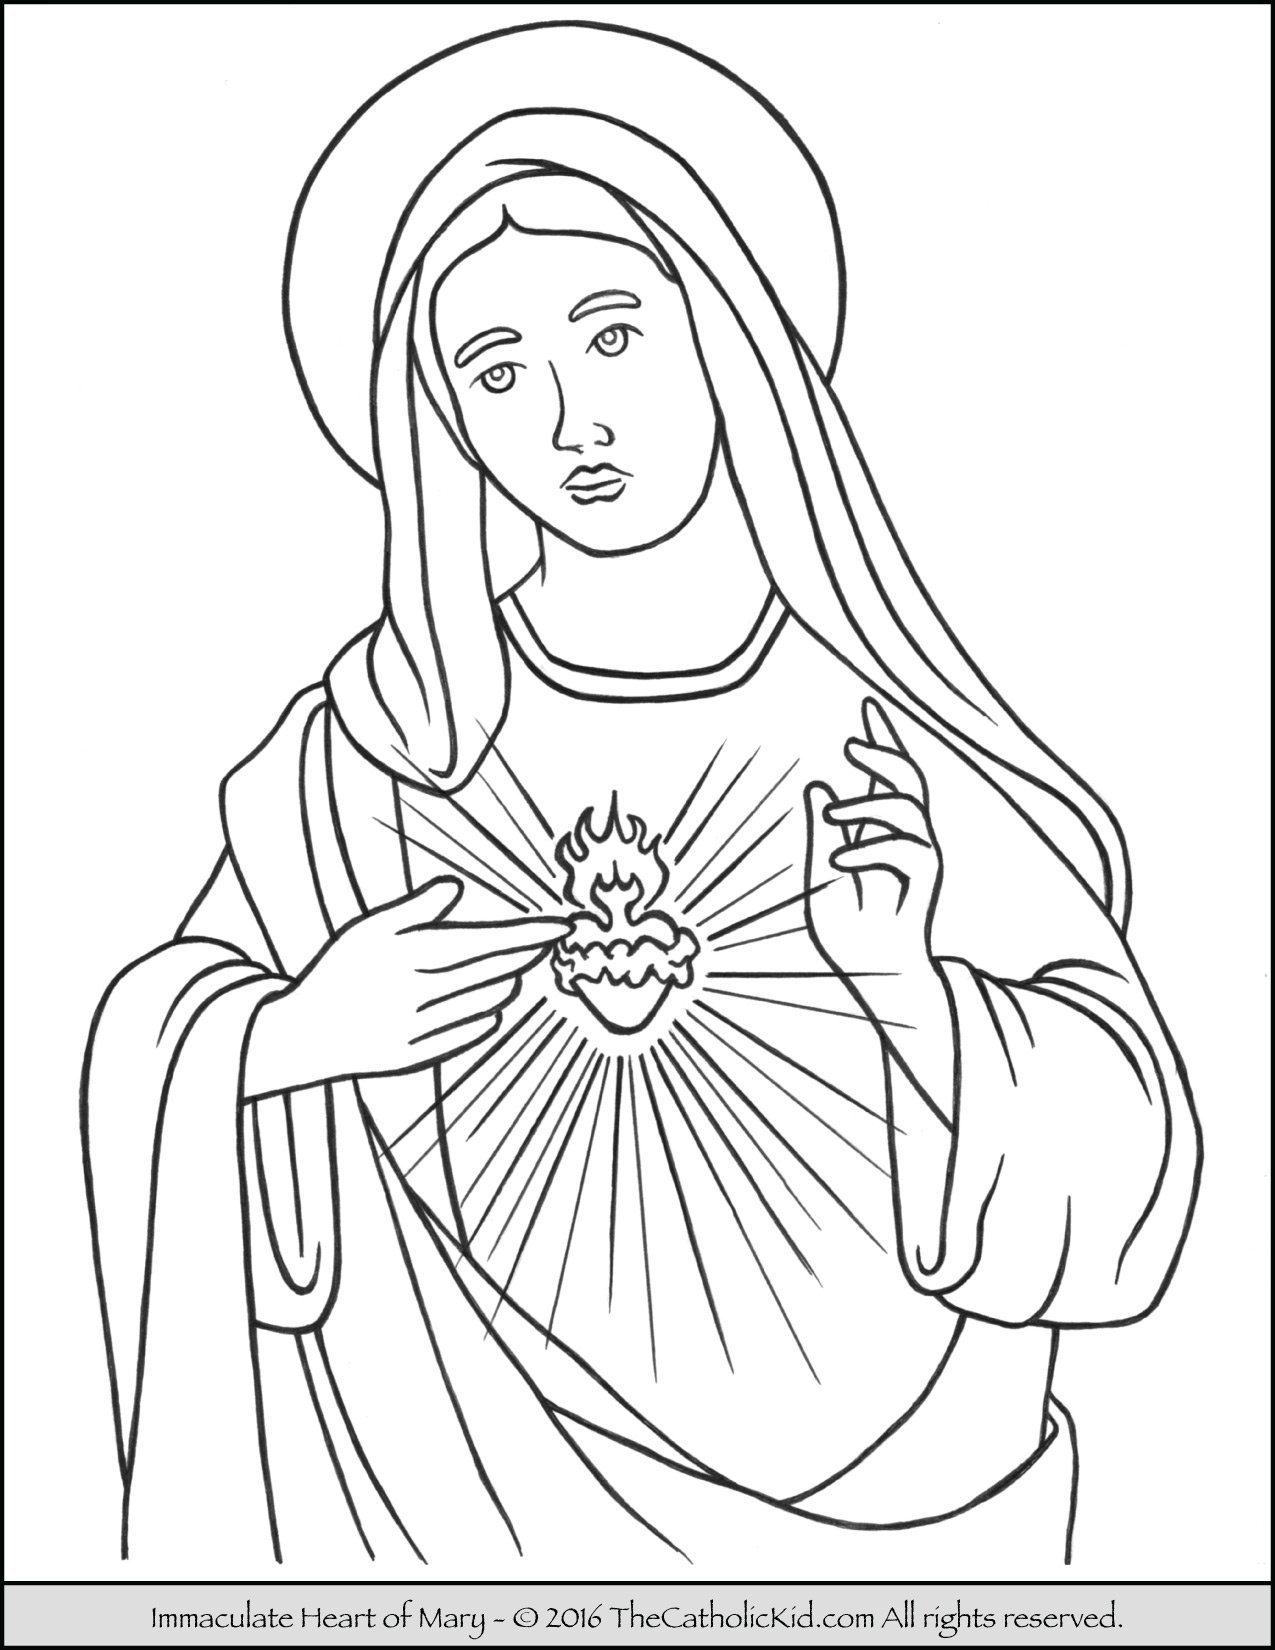 coloring sheet of mary mcleod coloring pages